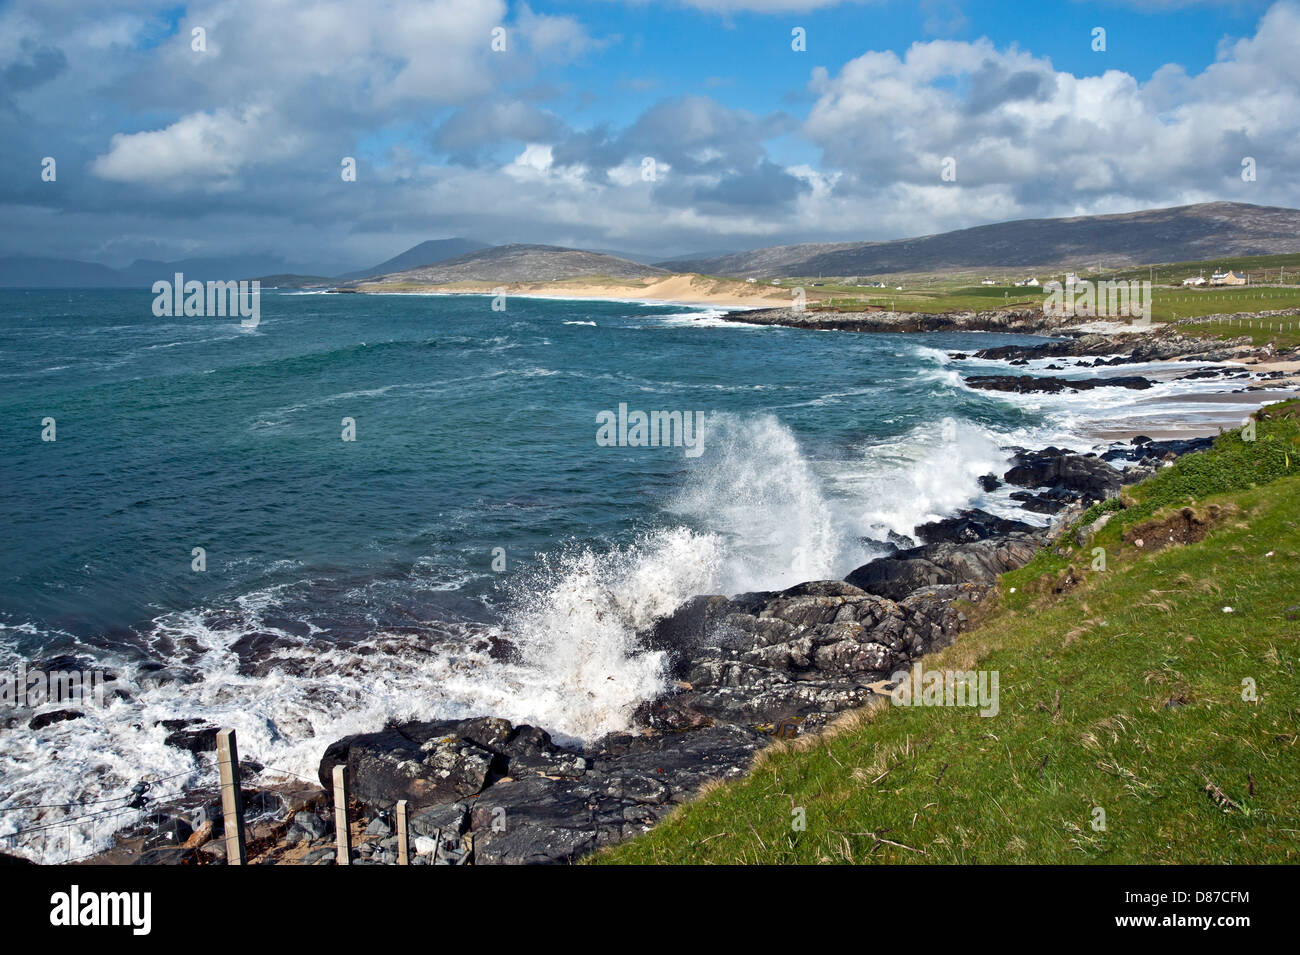 Sandy beaches and waves breaking on the west coast of South Harris near Sgarasta Mhor on the Outer Hebrides Scotland - Stock Image